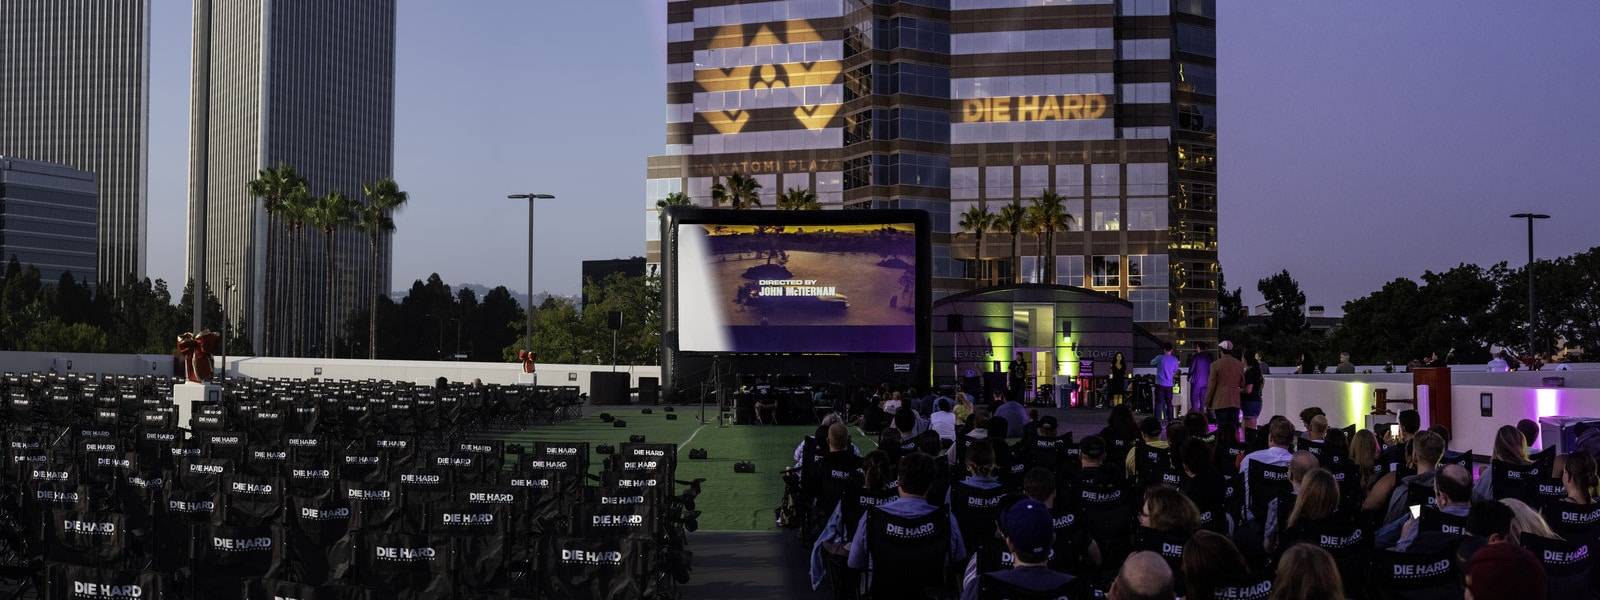 Die Hard Anniversary Screening